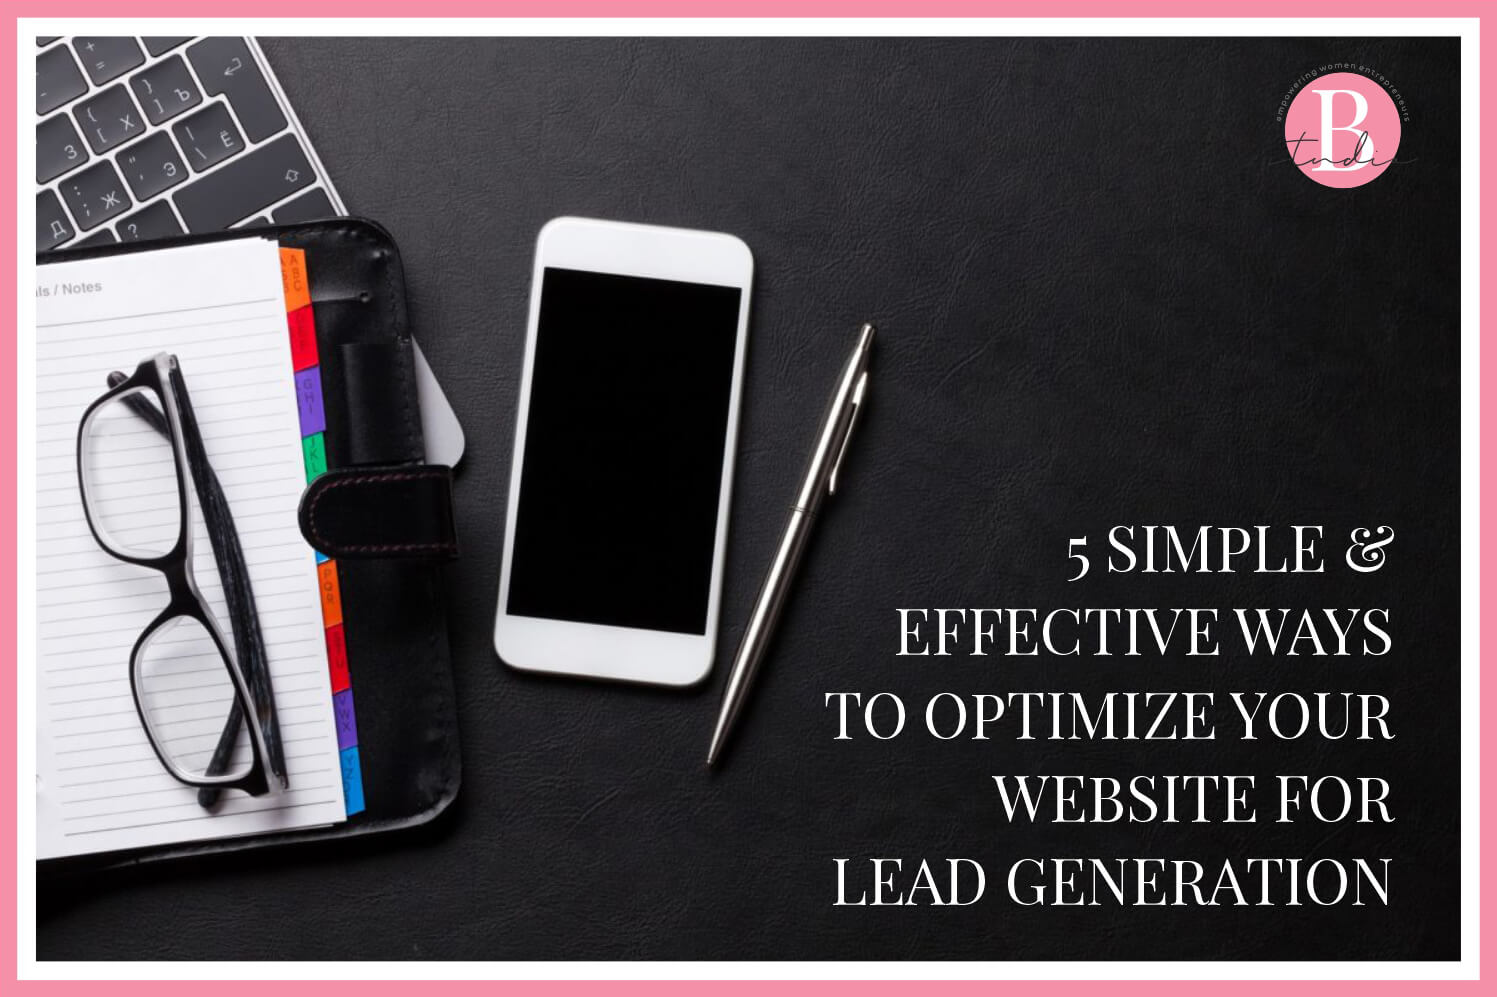 5 Simple & Effective Ways to Optimize Your Website for Lead Generation img